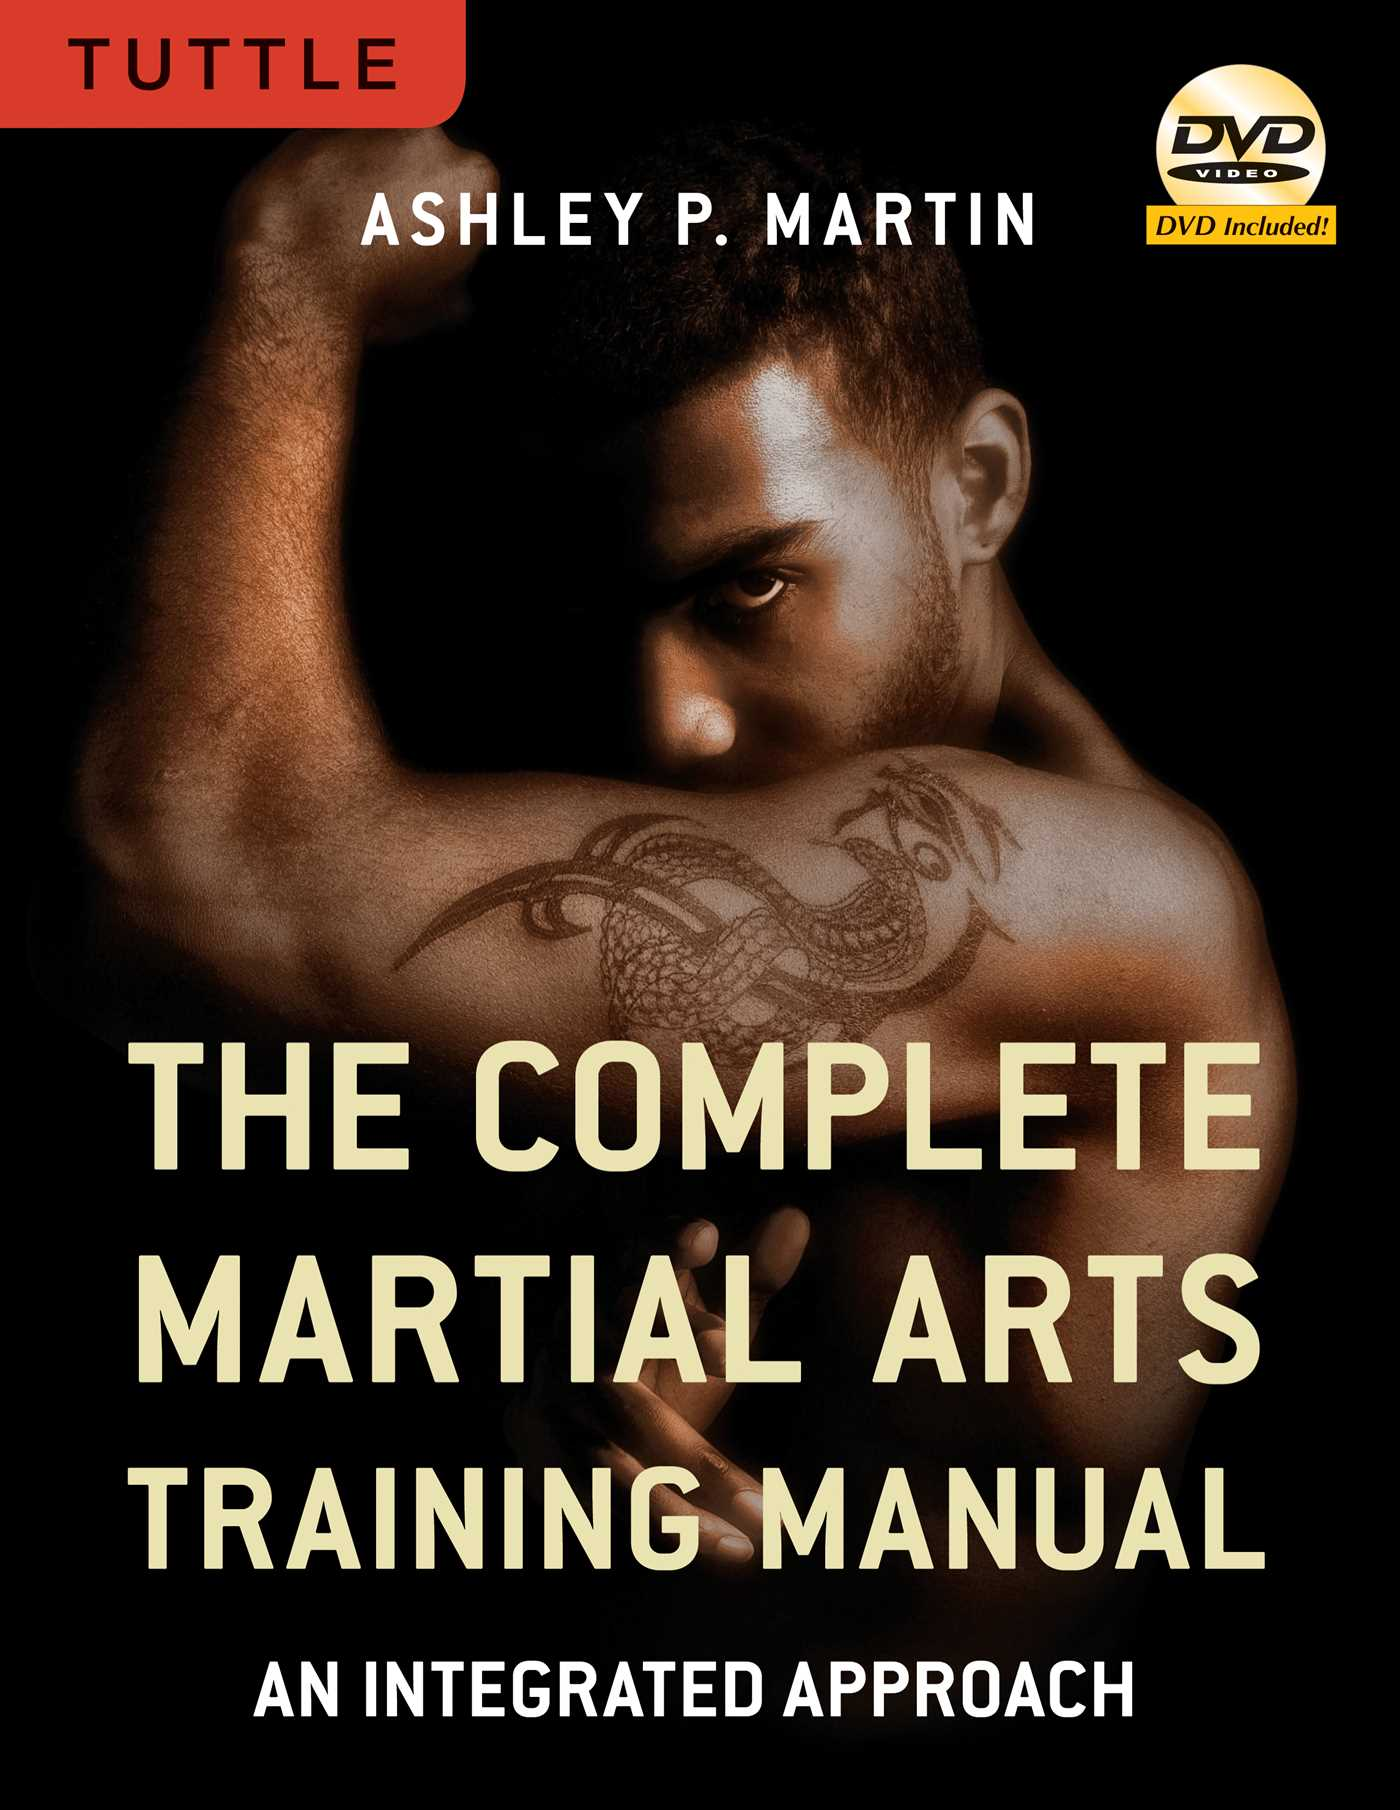 The-complete-martial-arts-training-manual-9780804846141_hr